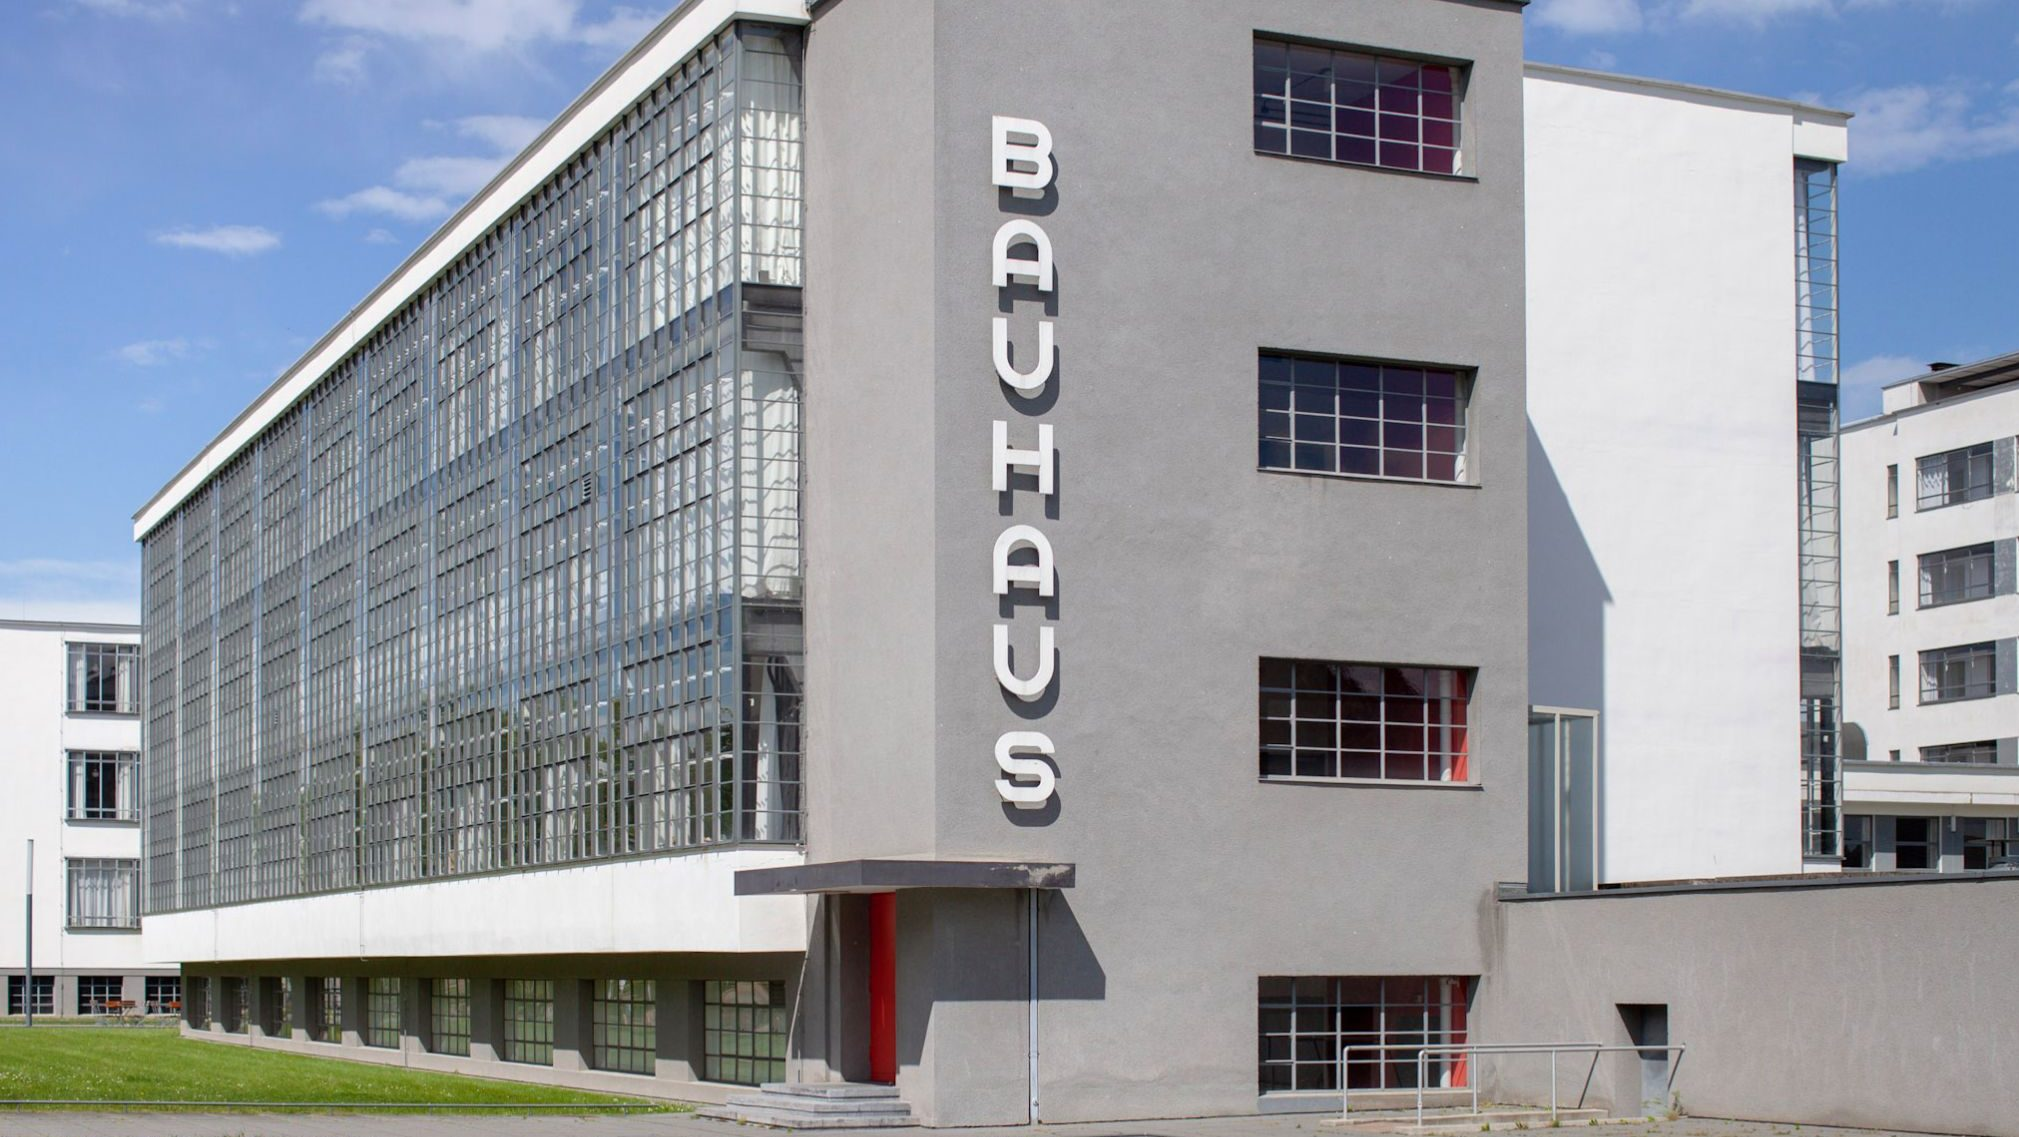 Adobe S Hidden Treasures Bauhaus Dessau Project Offers